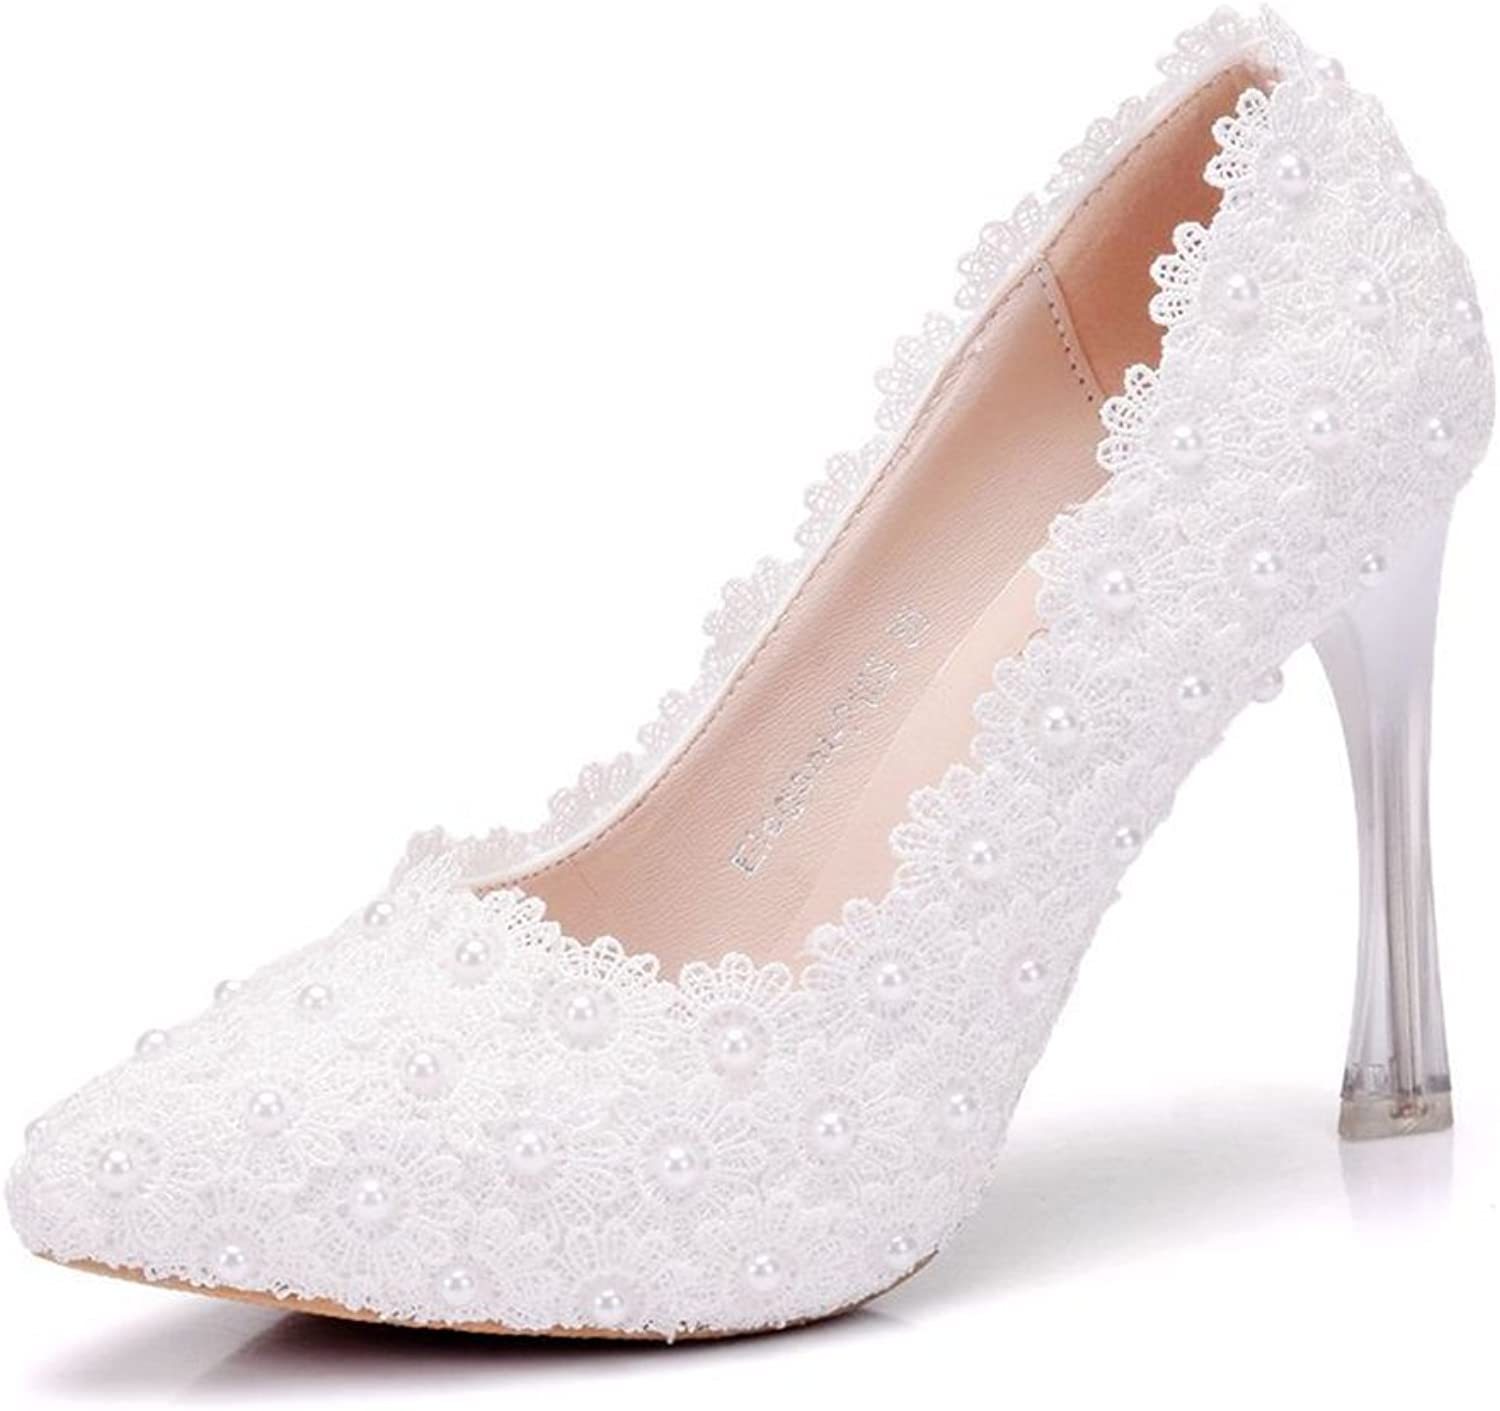 SUNNY Store Womens High Heels Special Occasion Wedding,Prom,Party,Dress Princess Pumps shoes